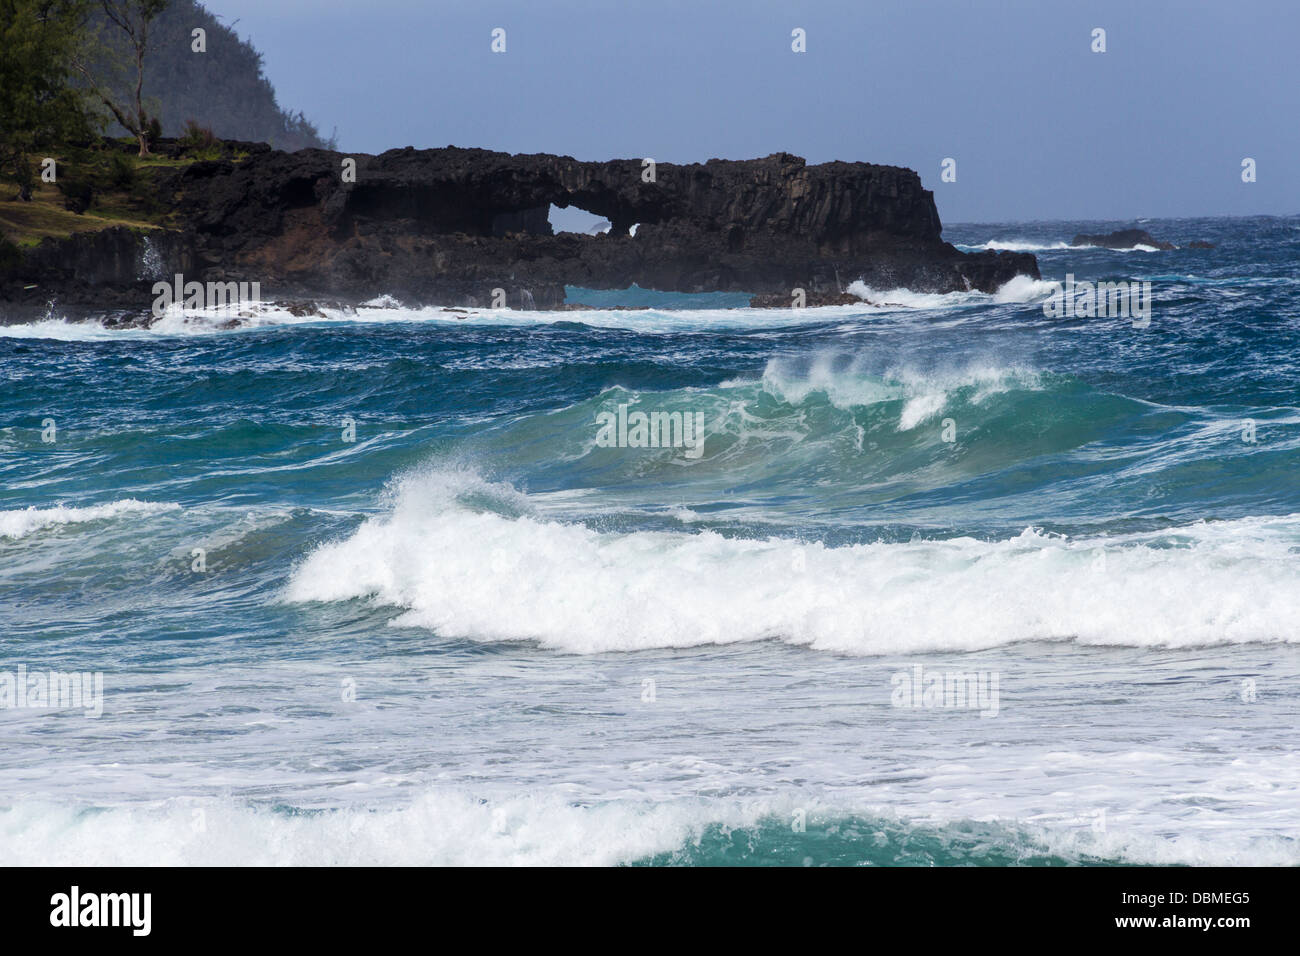 Arches and crashing waves at Kaihalulu Red Sand Beach on Maui - Stock Image